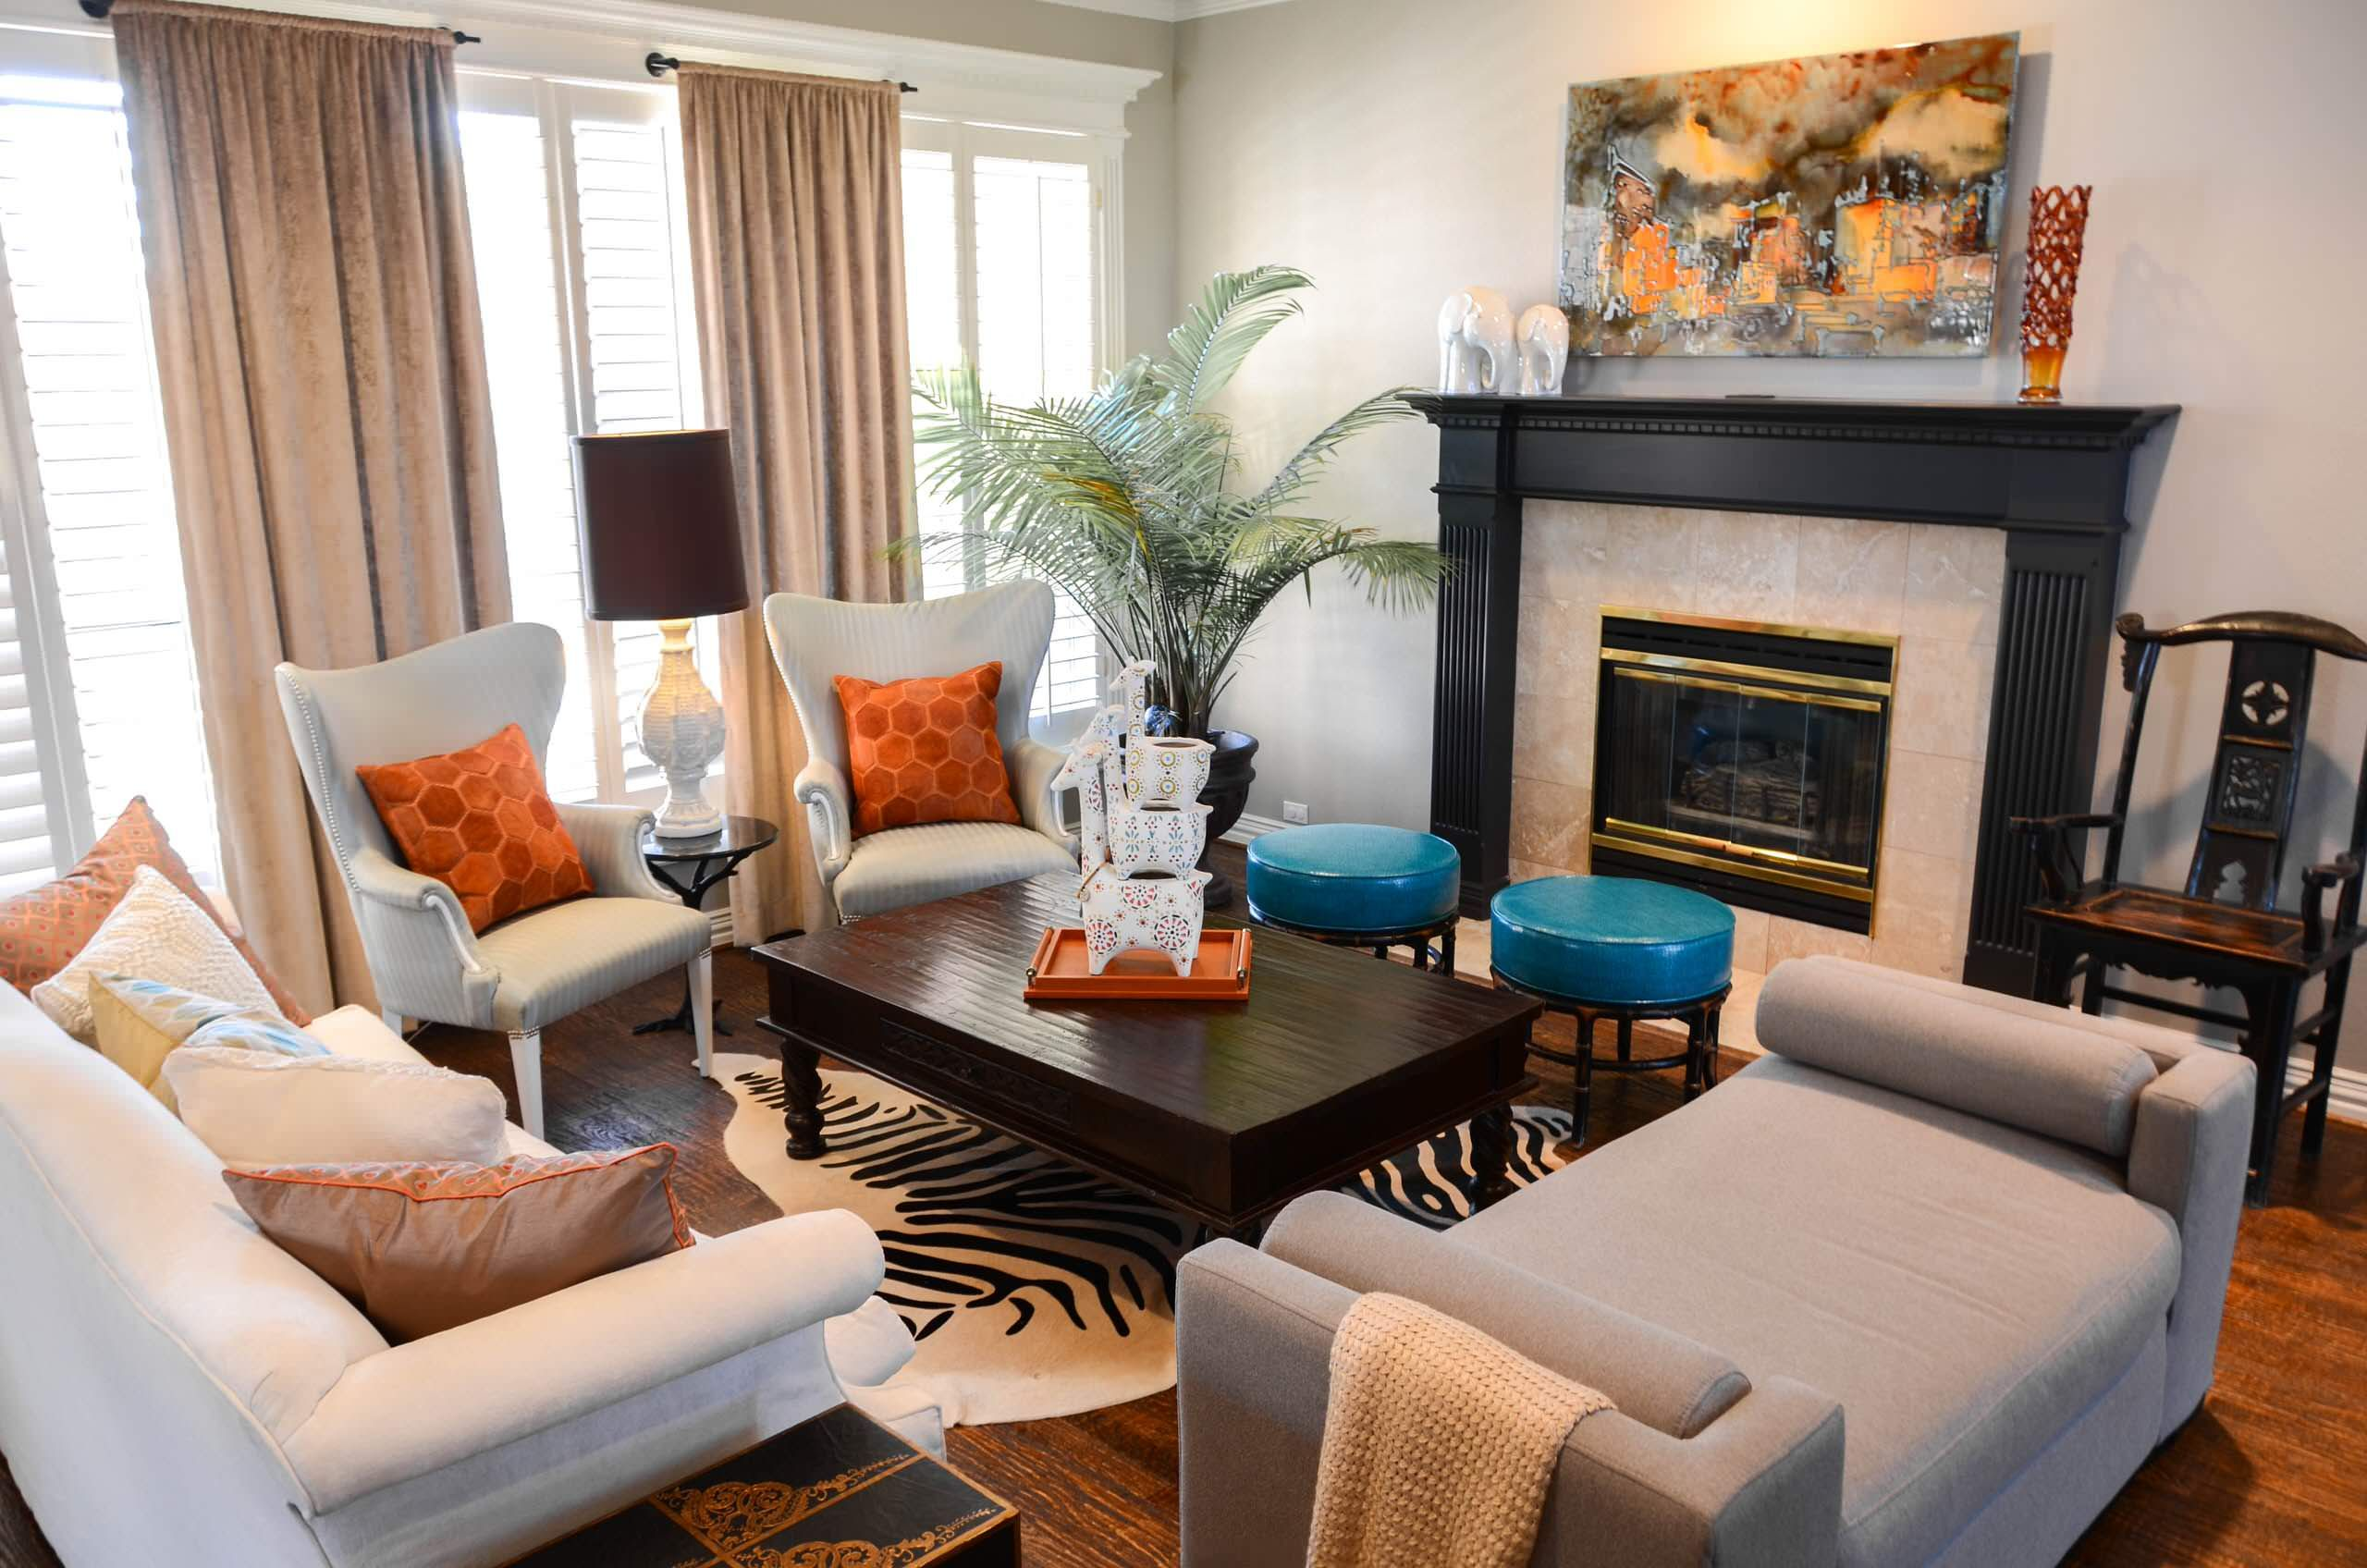 Fireplace makeover to change fireplace in your home design zebra